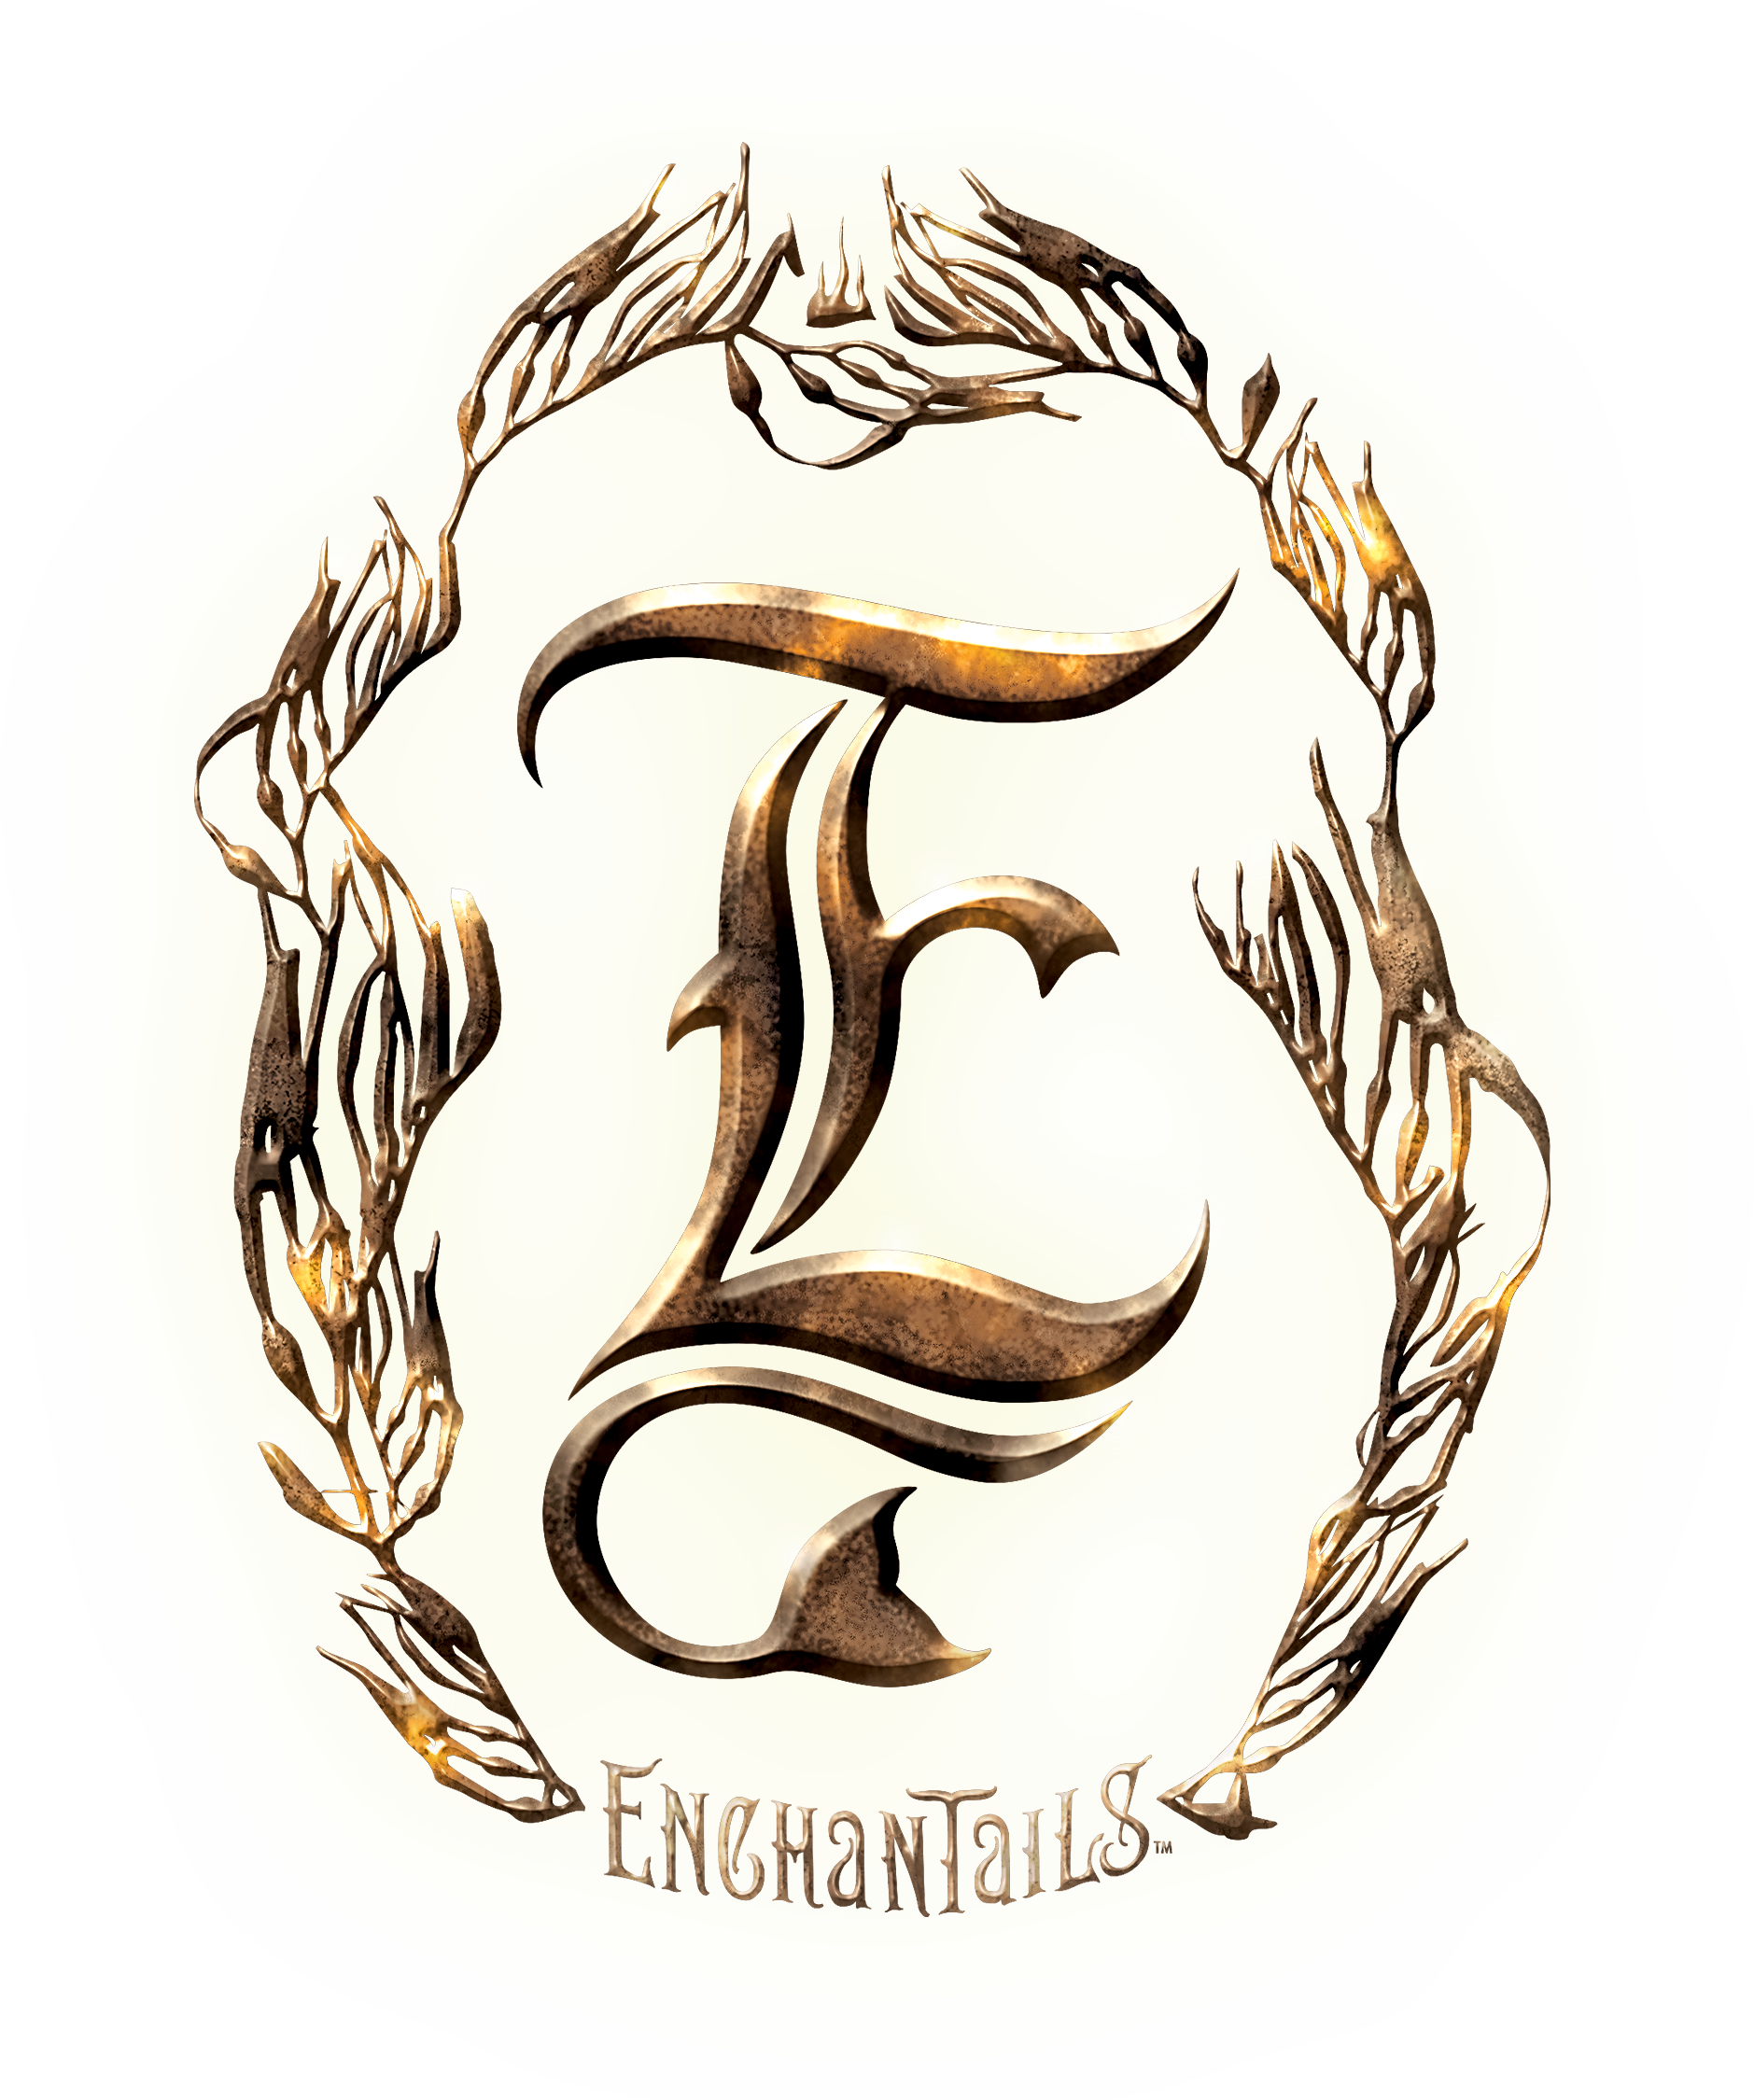 EnchantailsGoldLogo